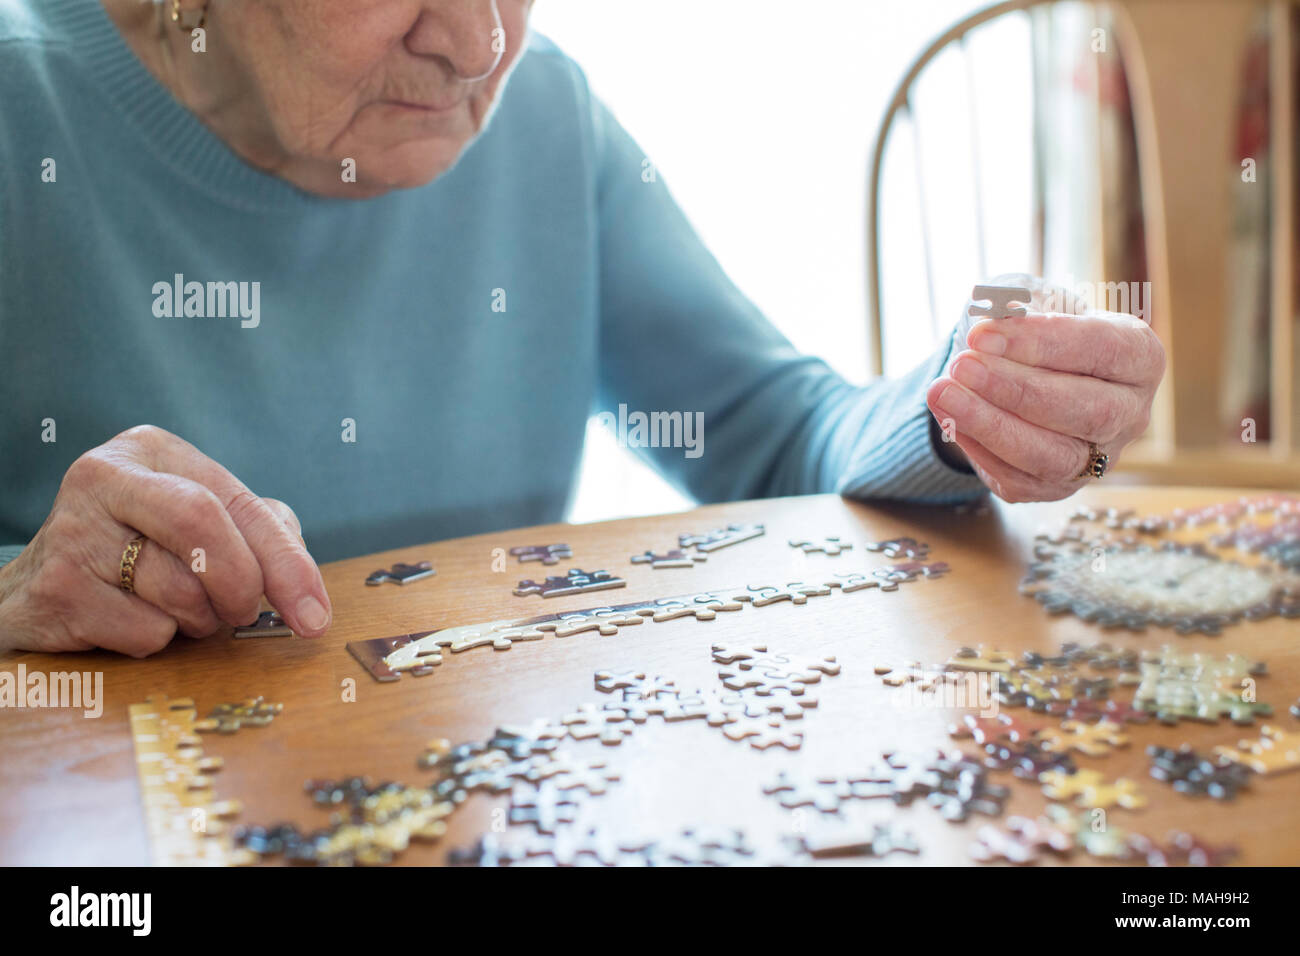 Close Up Of Senior Woman Relaxing With Jigsaw Puzzle At Home - Stock Image